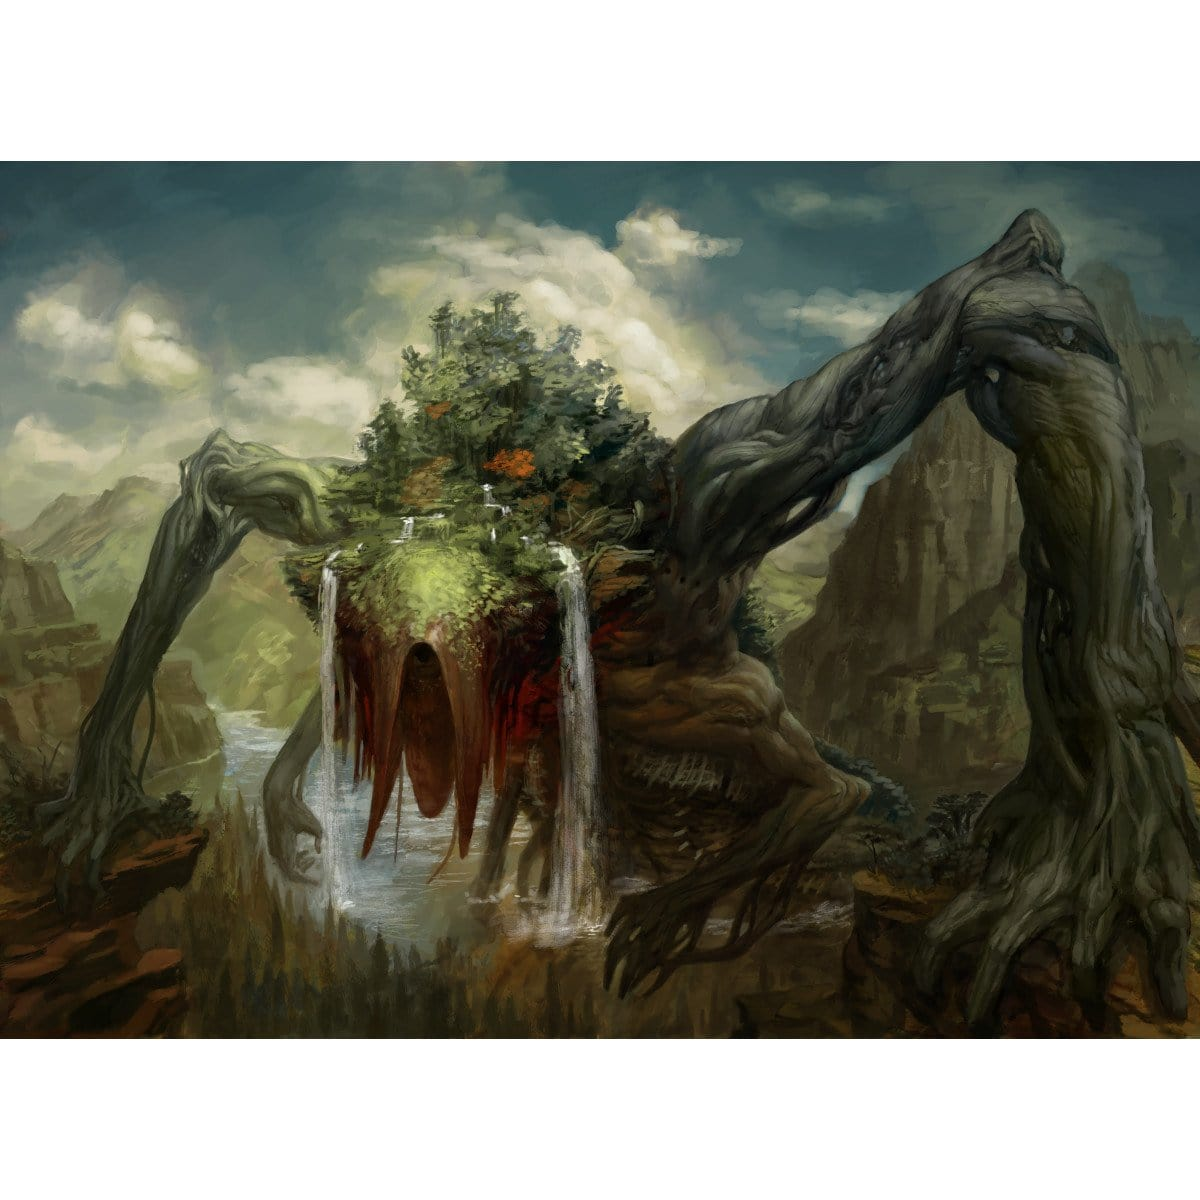 Animar, Soul of Elements Print - Print - Original Magic Art - Accessories for Magic the Gathering and other card games